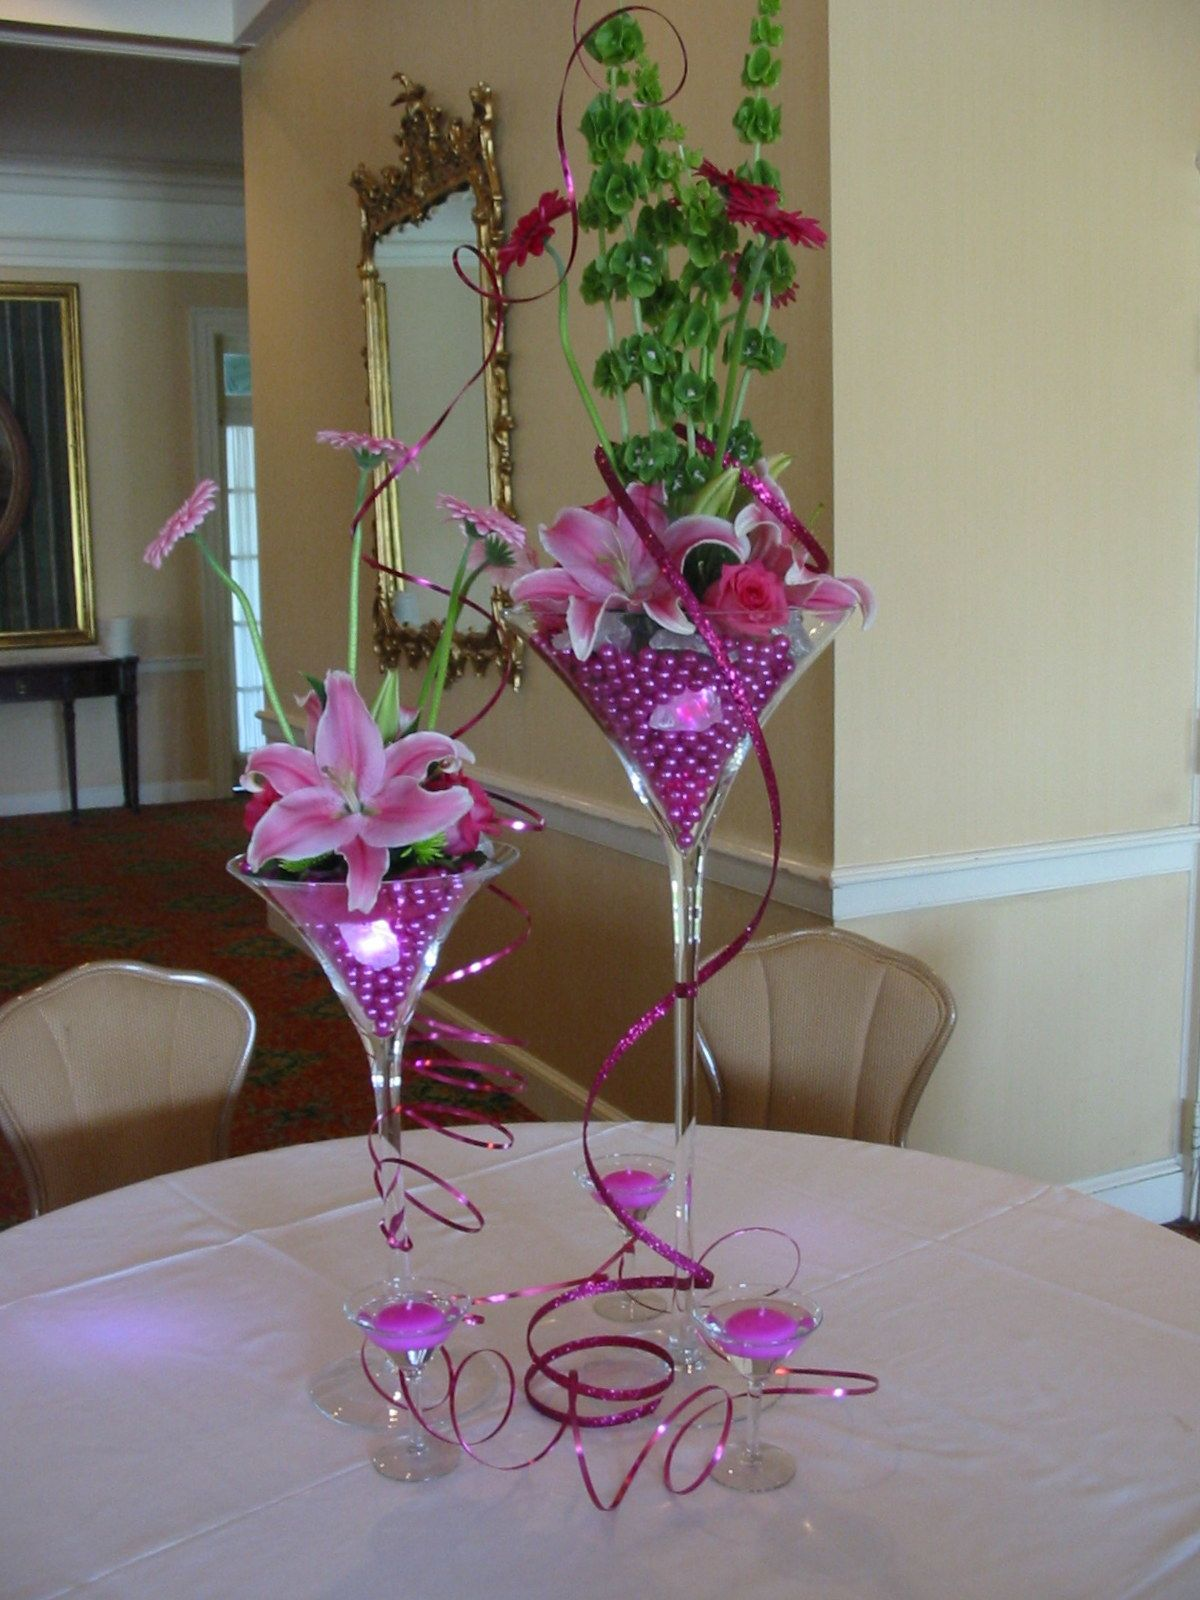 Giant Wine Glass Decorations Centerpiece Using Martini Glasses Filled With Hot Pink